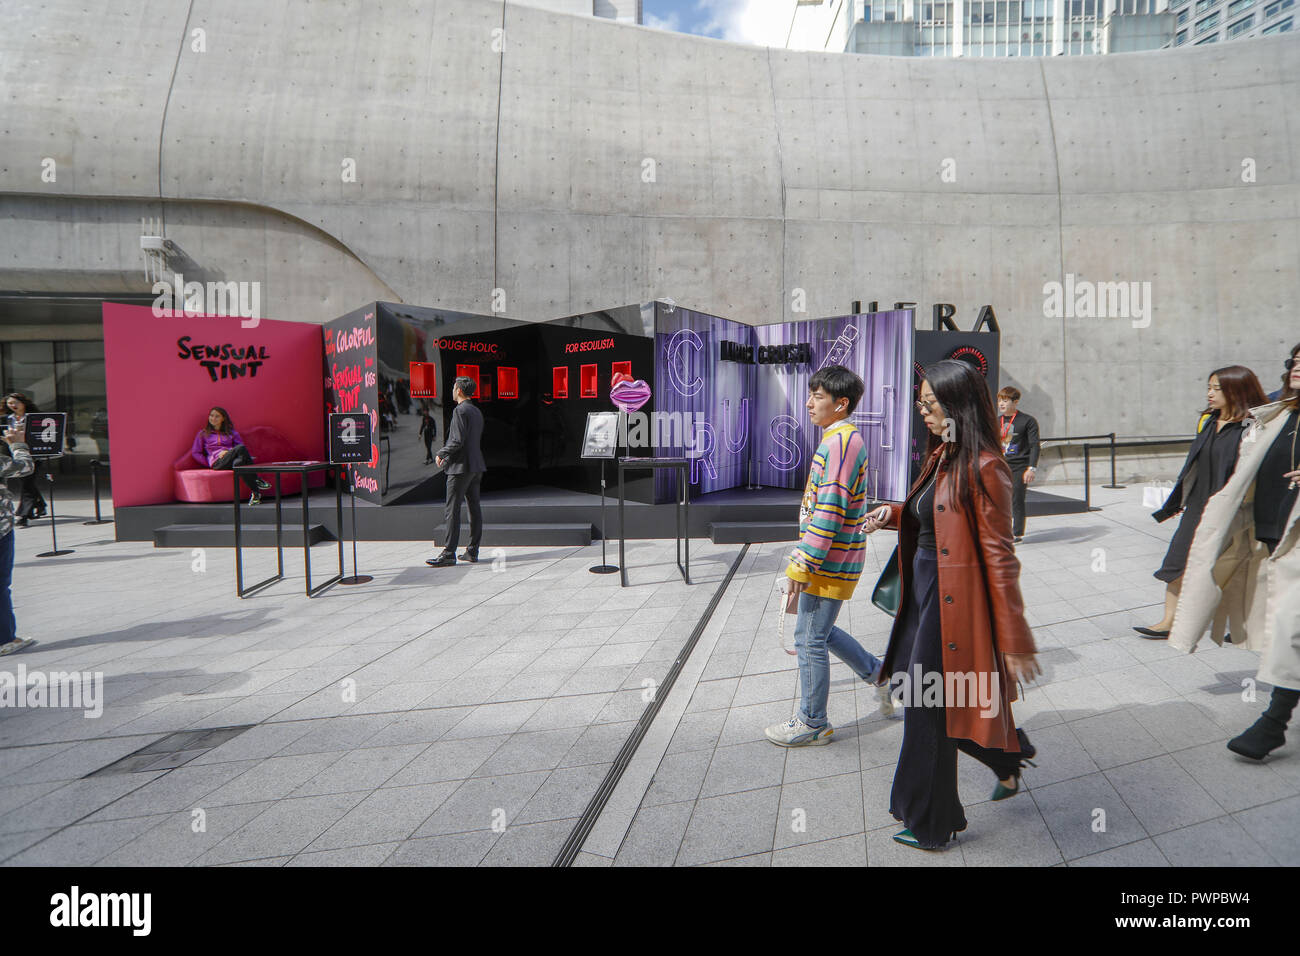 October 18 2018 Seoul South Korea Oct 18 2018 Seoul South Korea Guests Seen At The